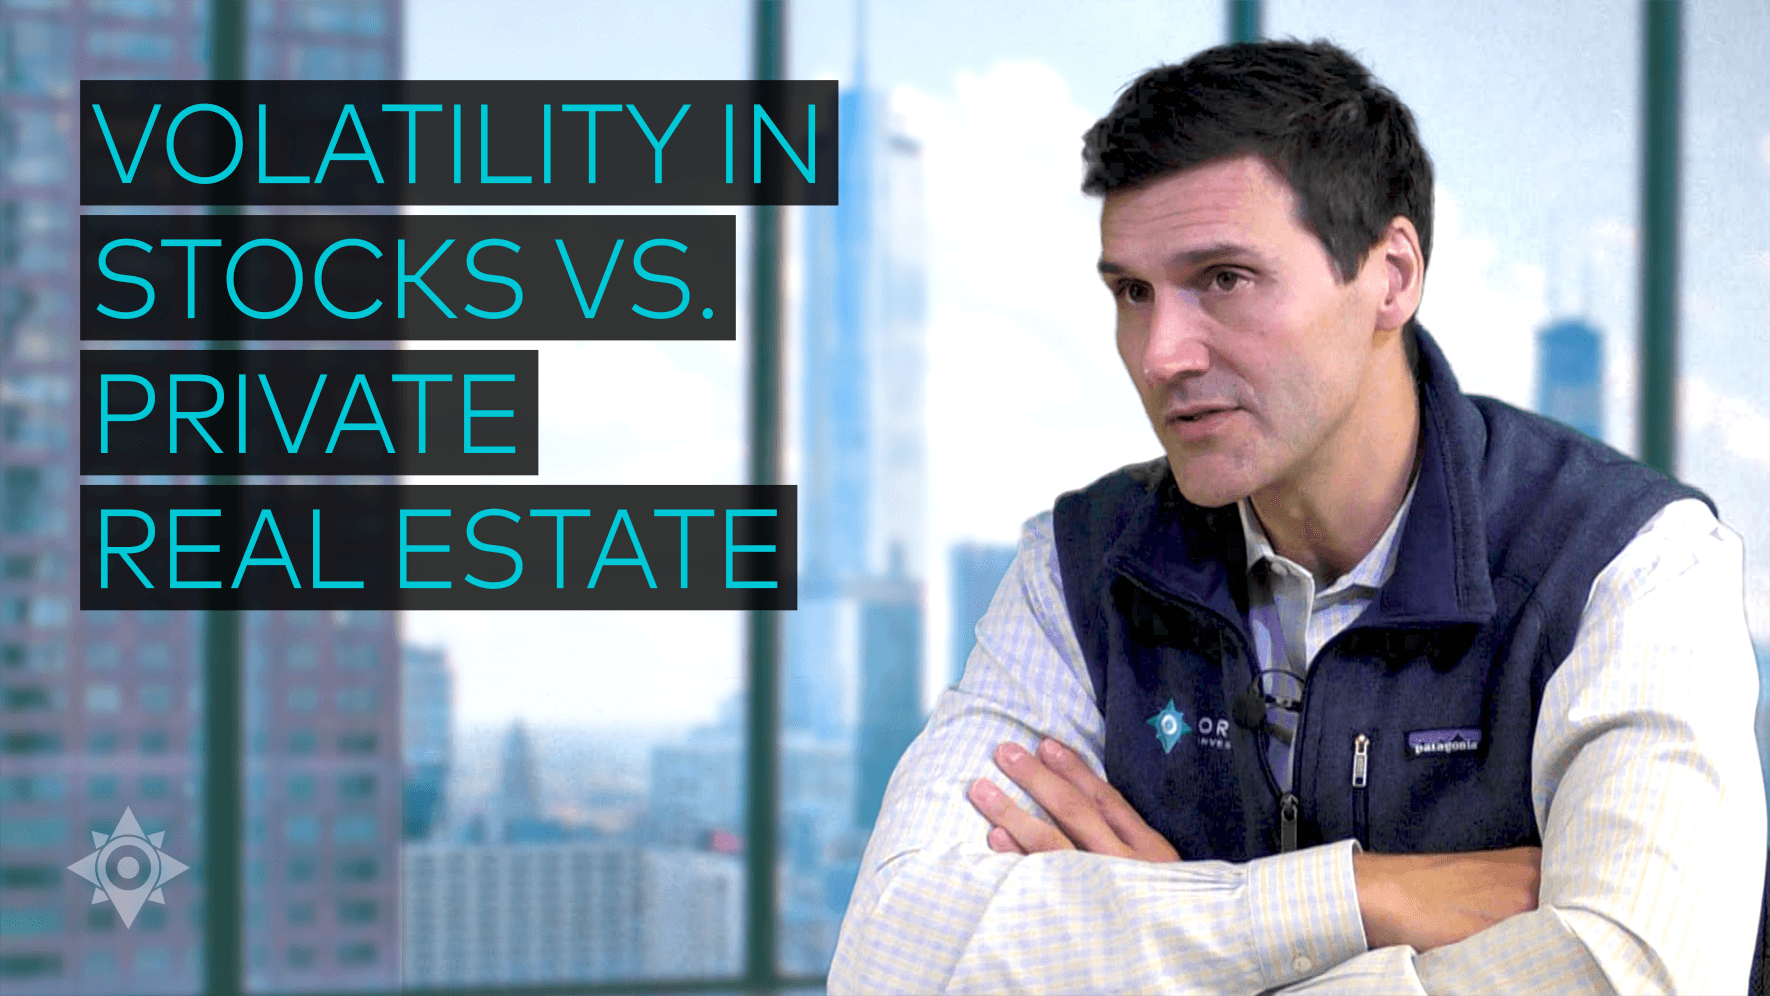 Volatility in Stocks vs Private Real Estate